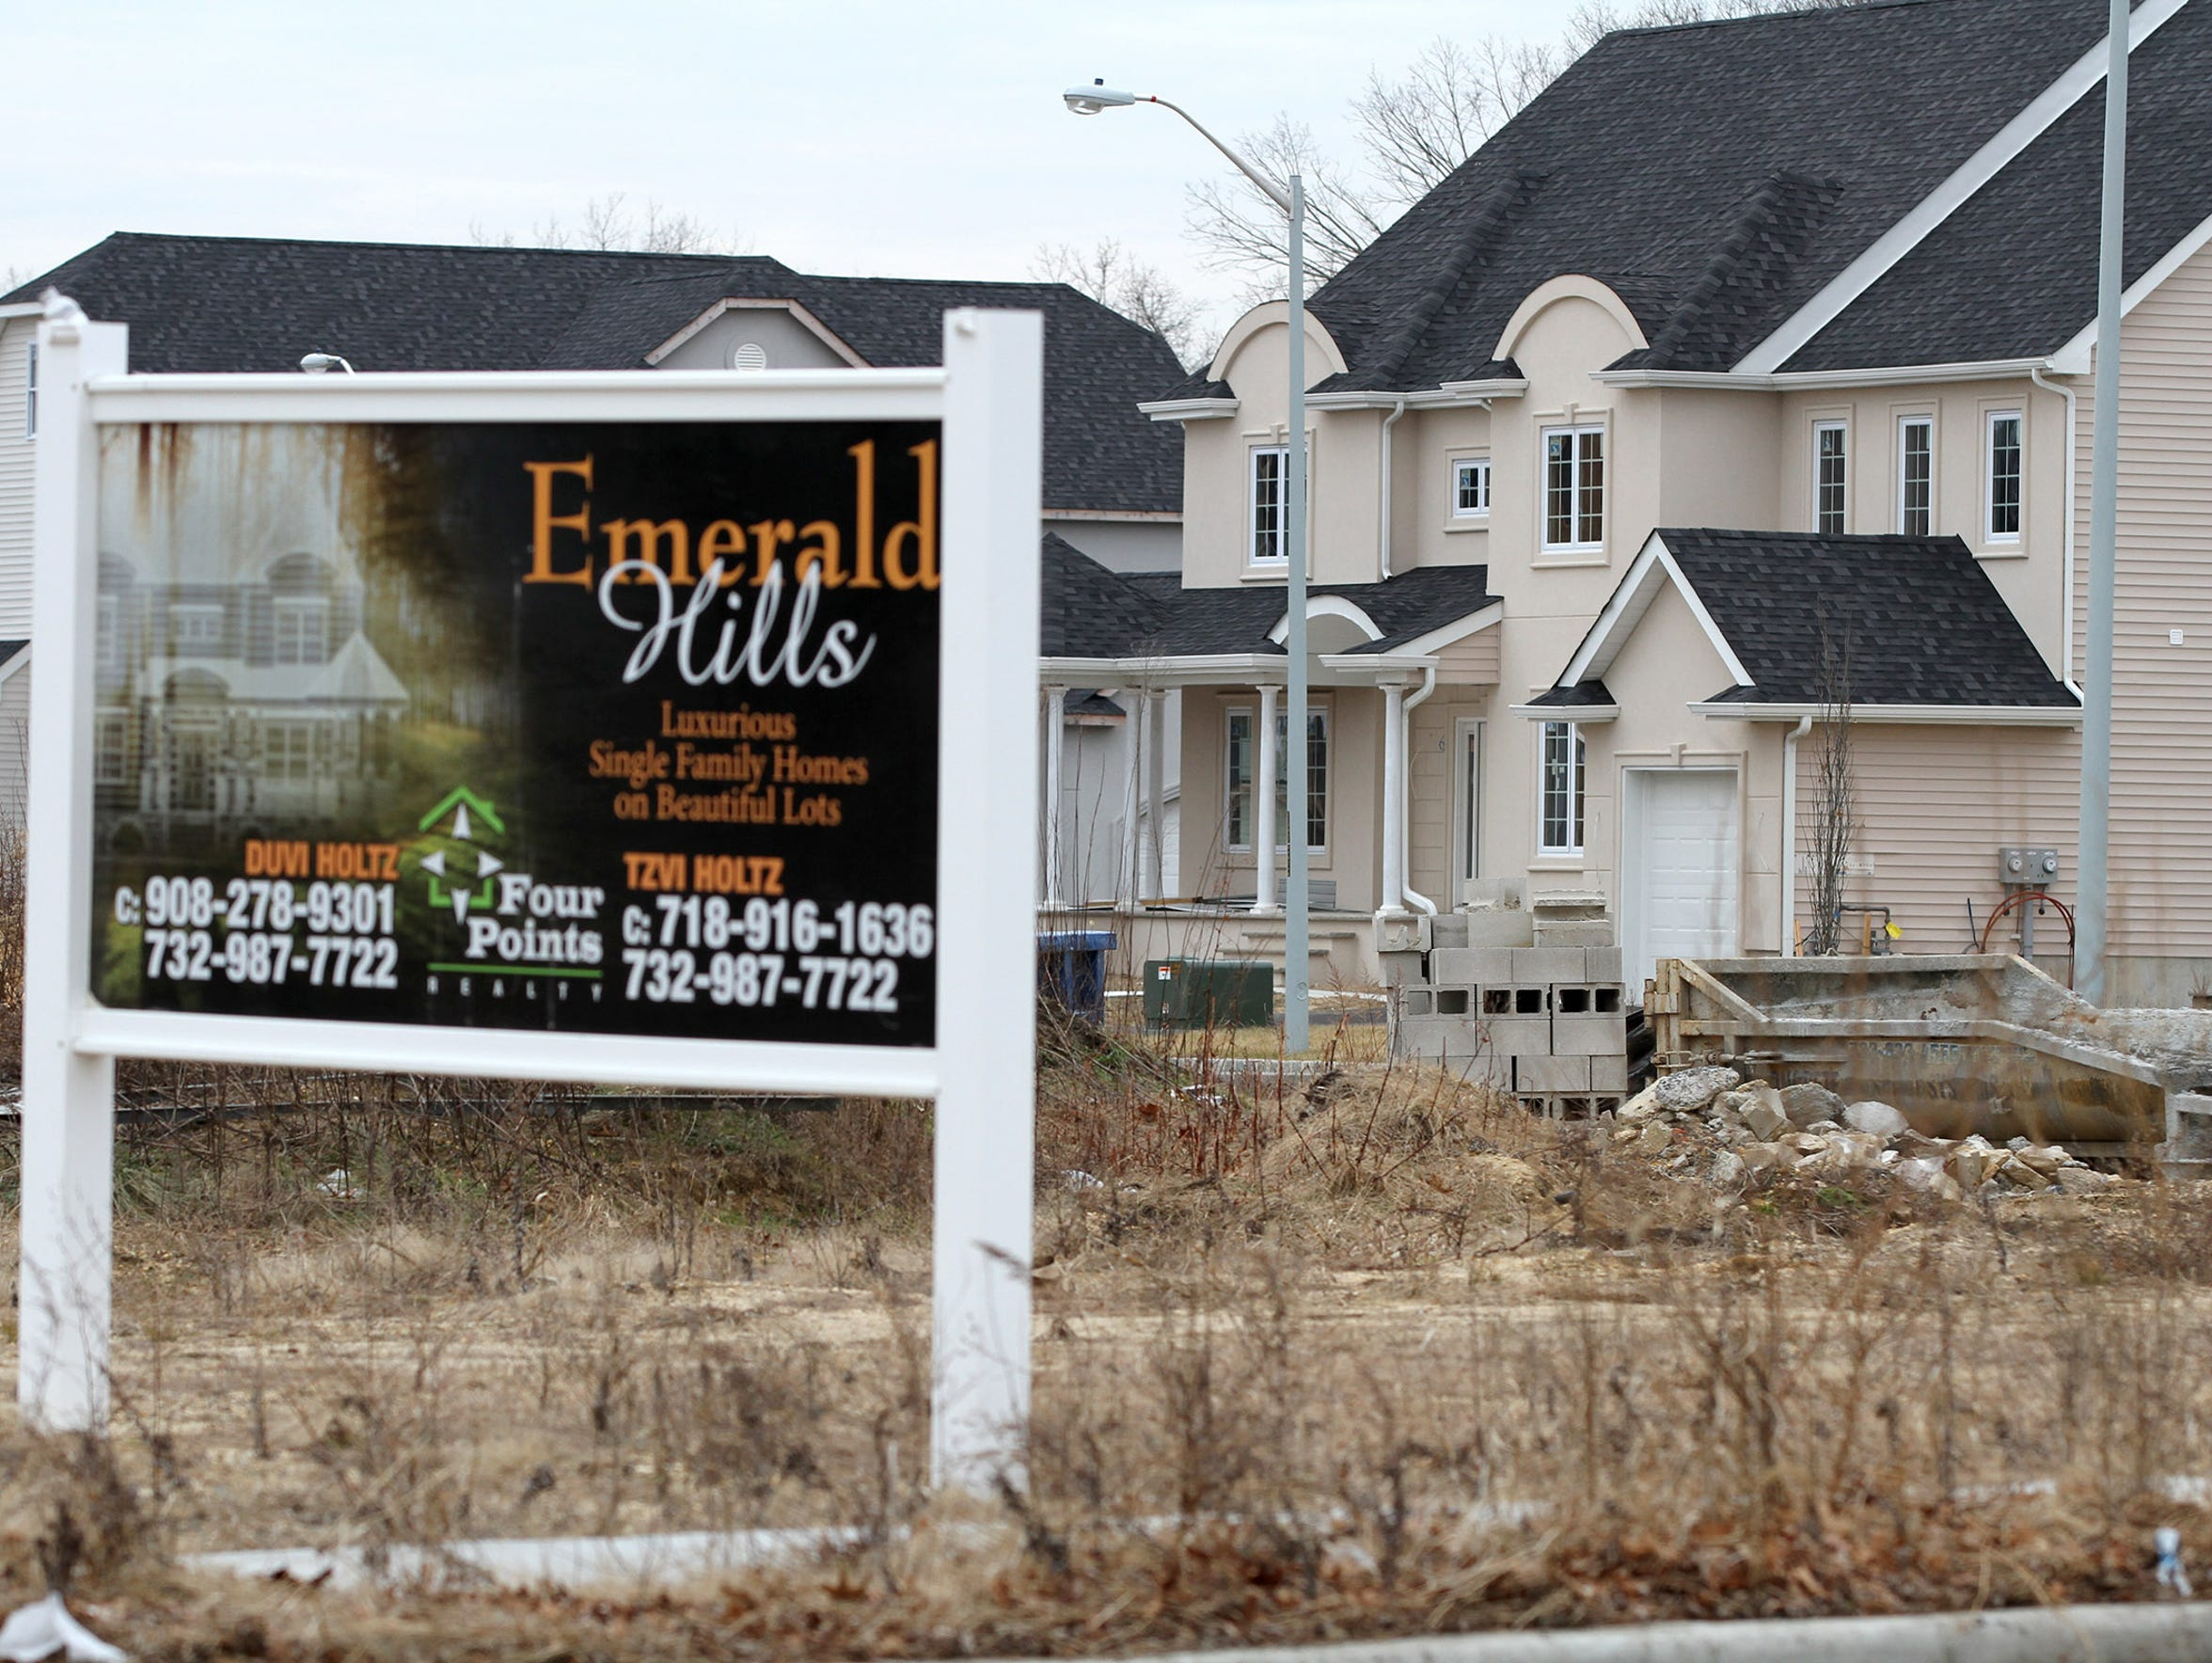 The Emerald Hills subdivision, off East County Line